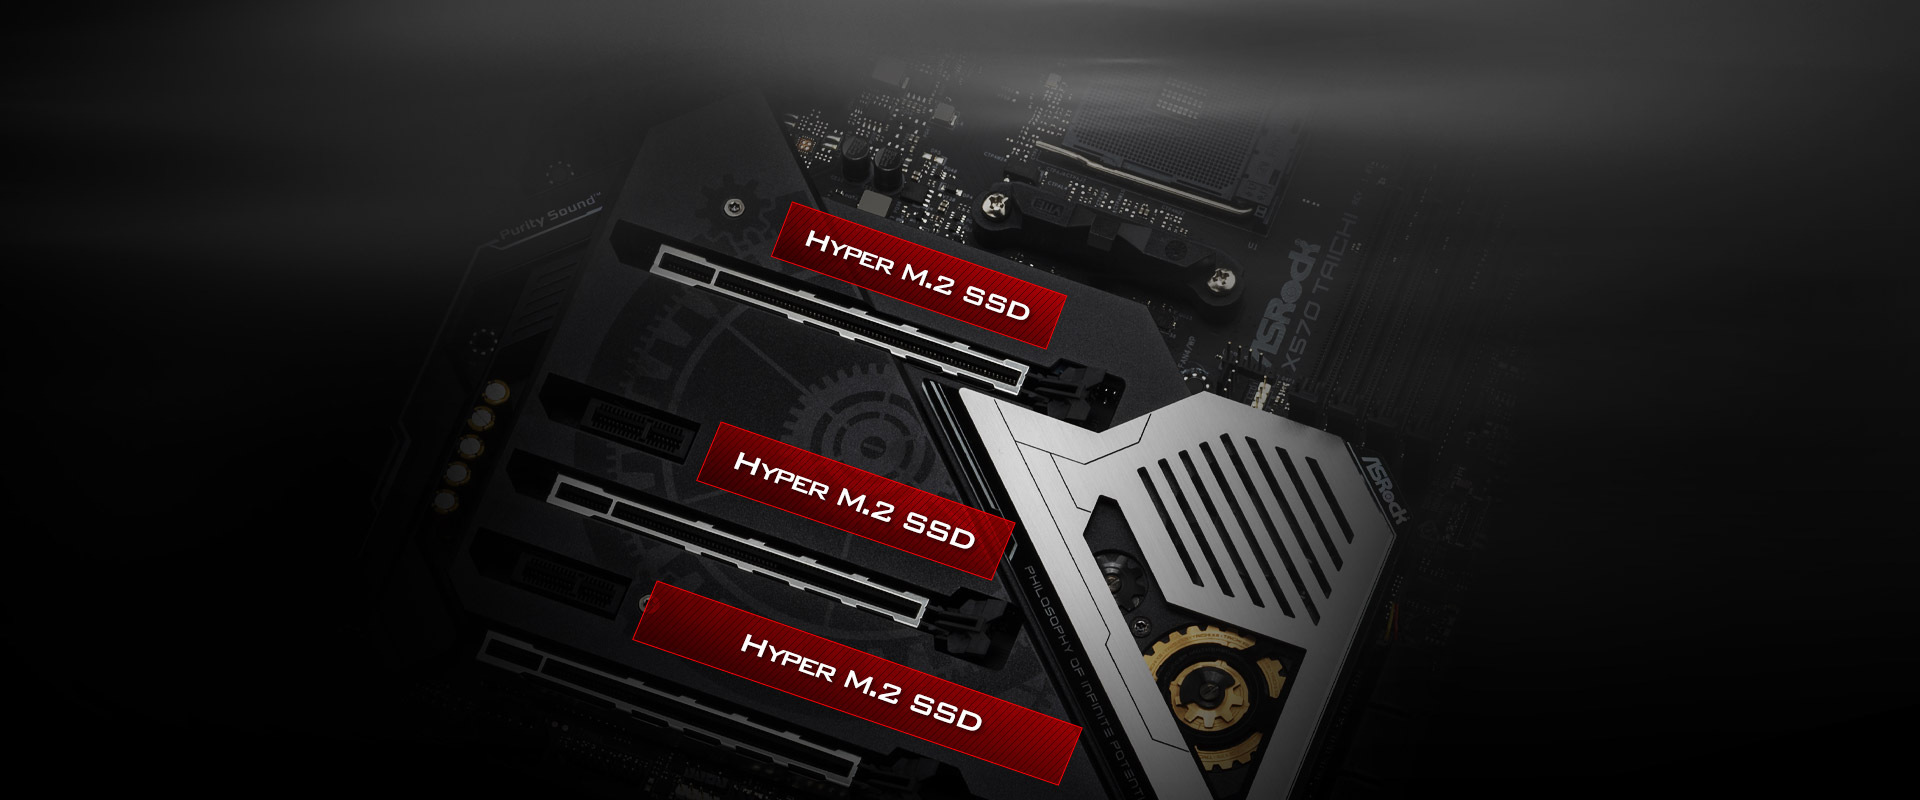 Highlight graphic showing the three M.2 slots on the ASRock X570 Taichi Motherboard, with the third bottom one being Hyper M.2